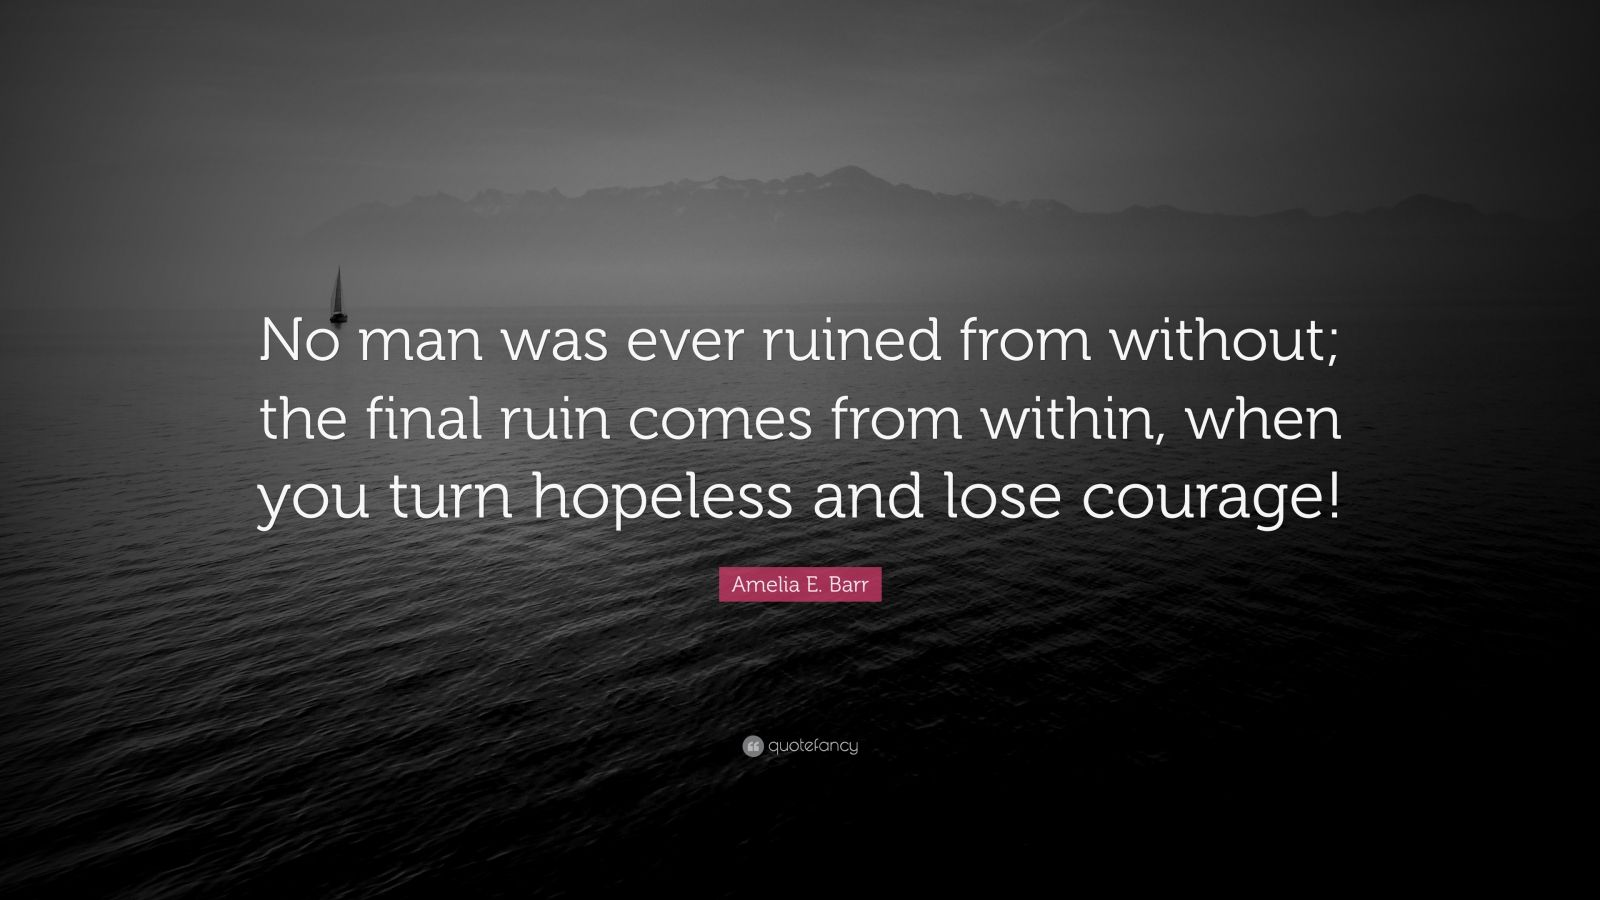 """Amelia E. Barr Quote: """"No man was ever ruined from without; the final ruin comes from within, when you turn hopeless and lose courage!"""""""